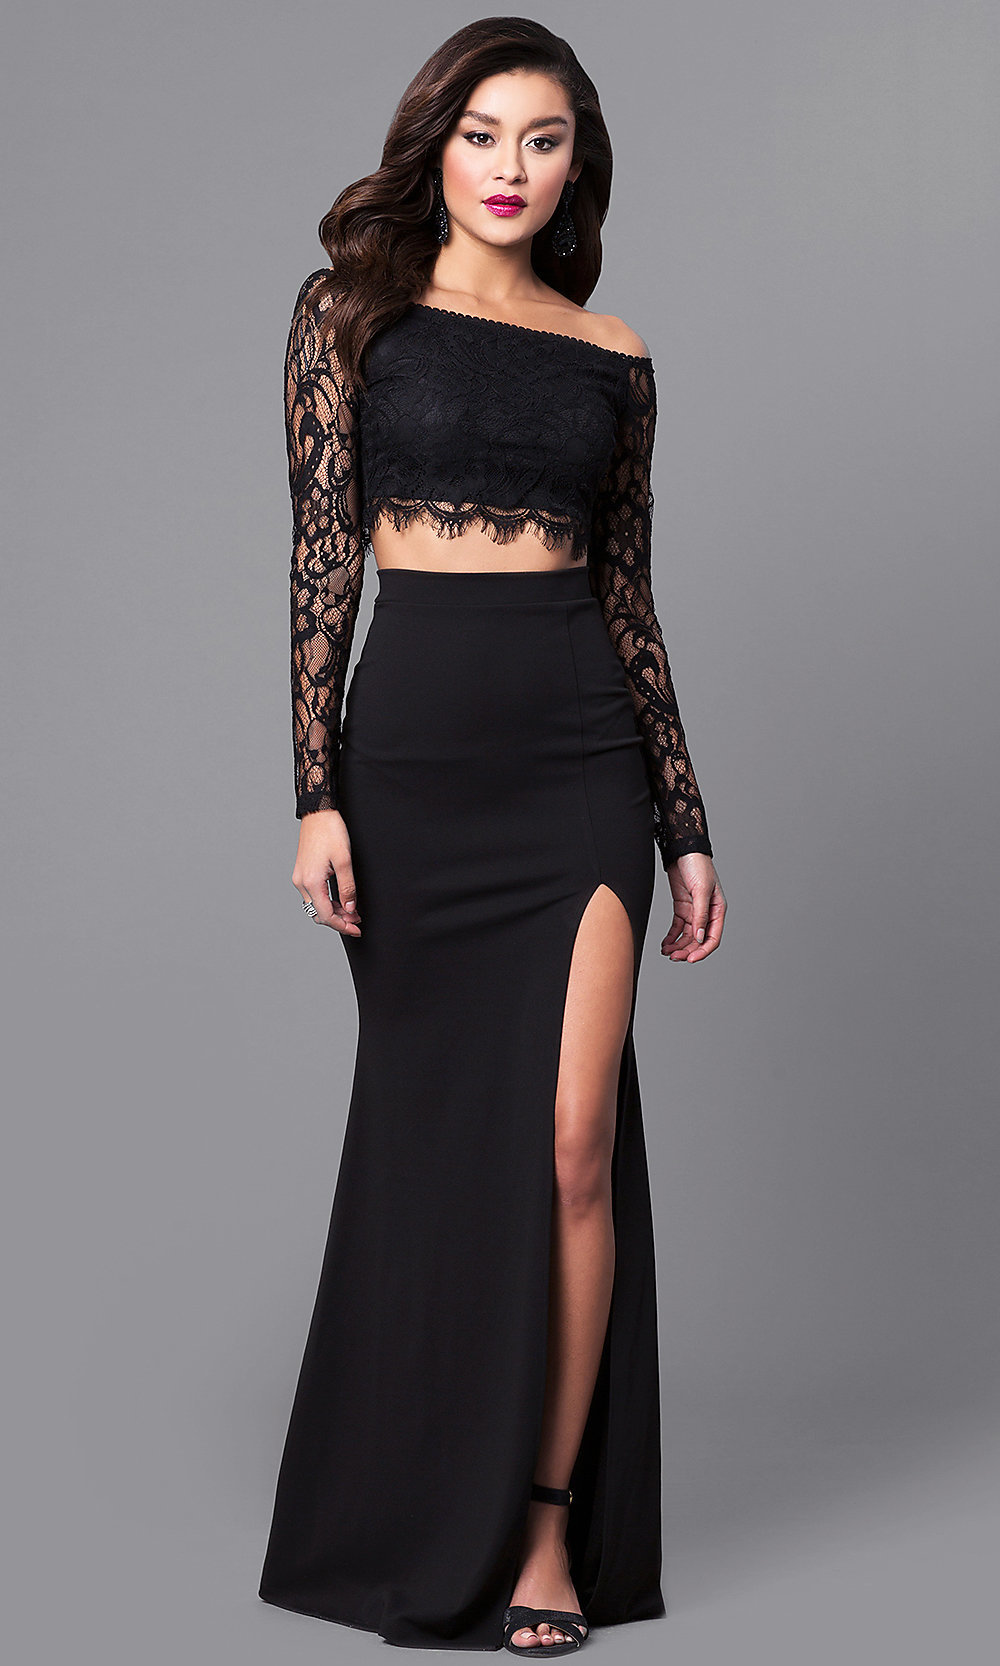 Long tail prom dress